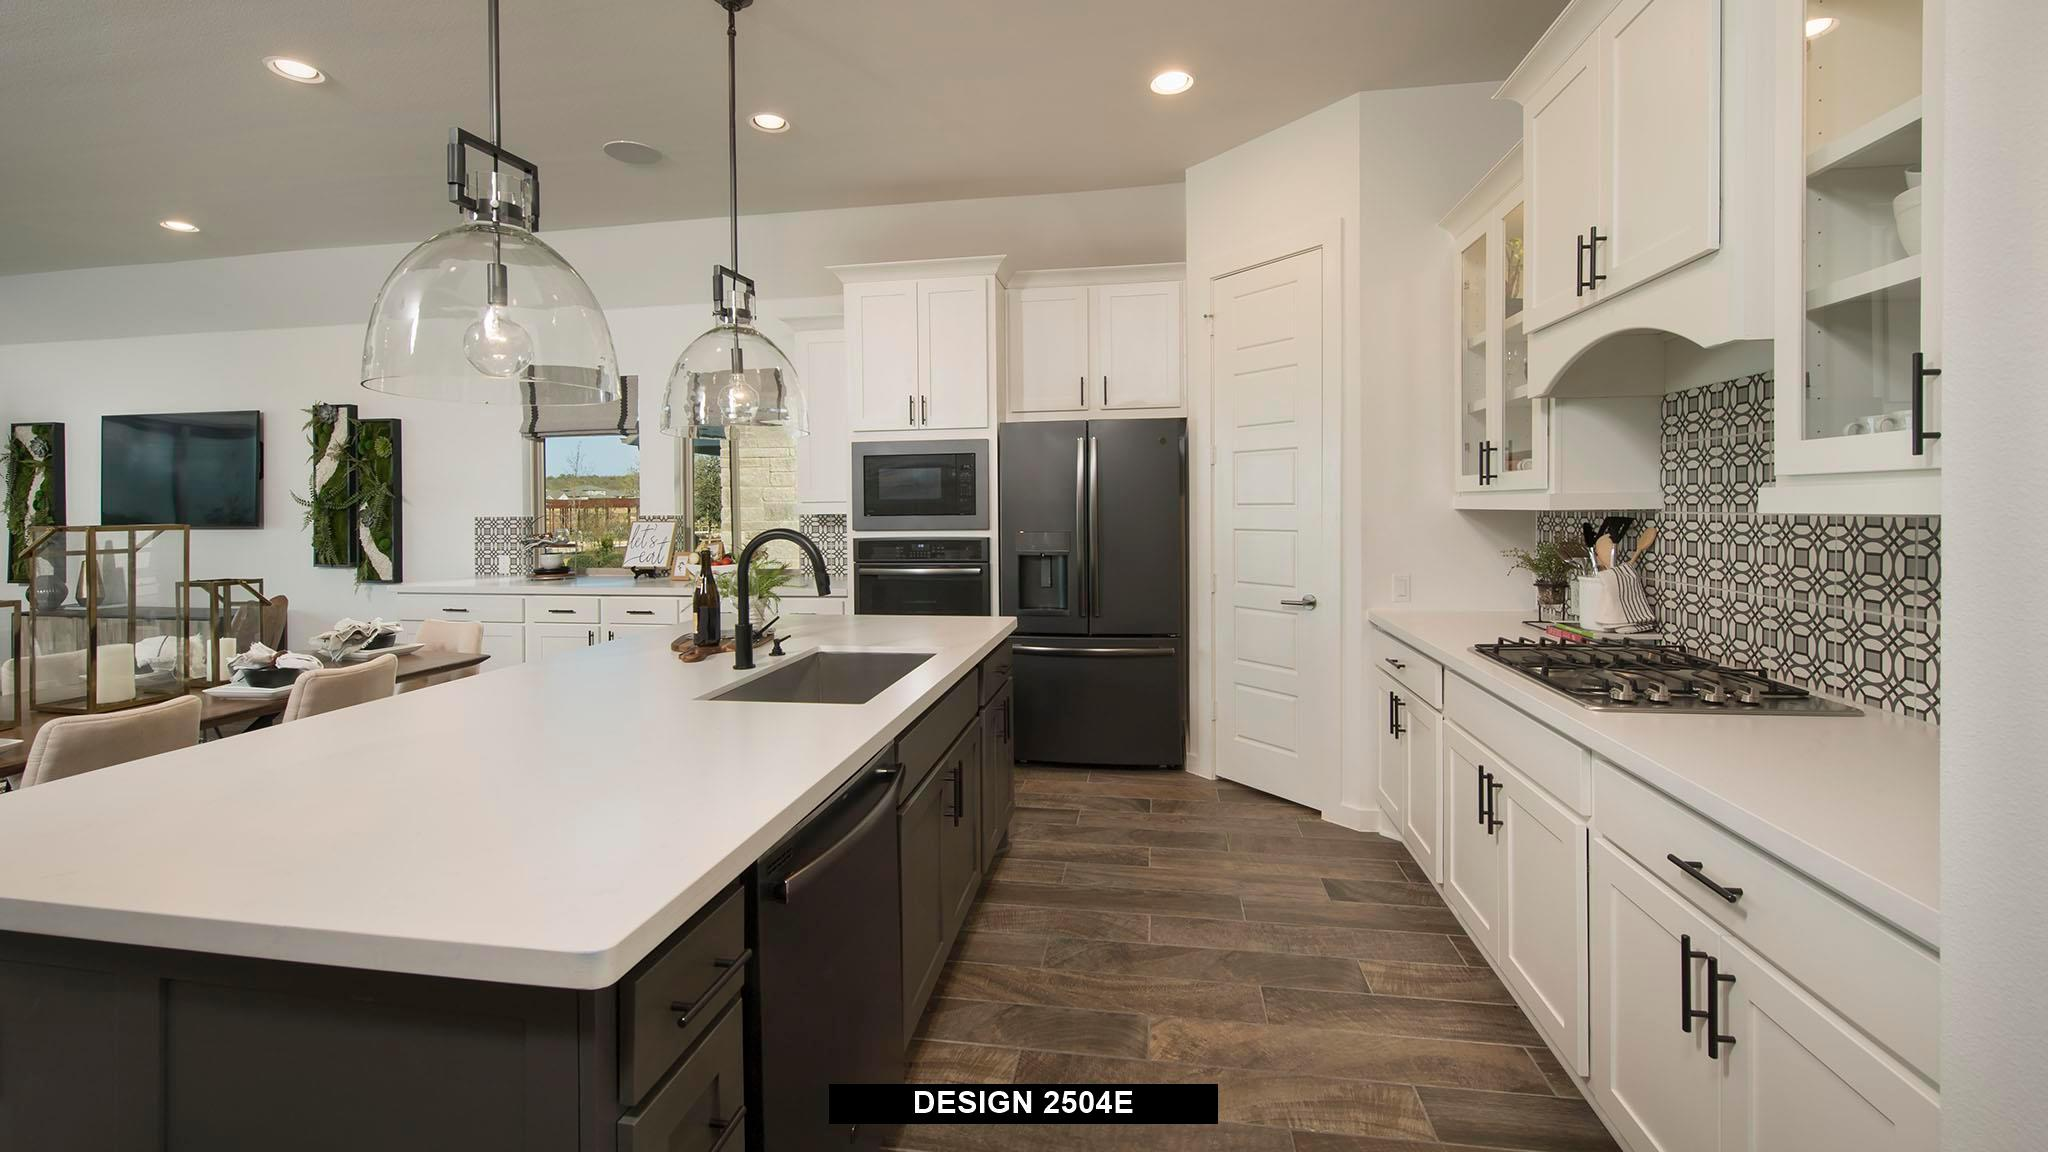 Kitchen featured in the 2504E By Perry Homes in Austin, TX